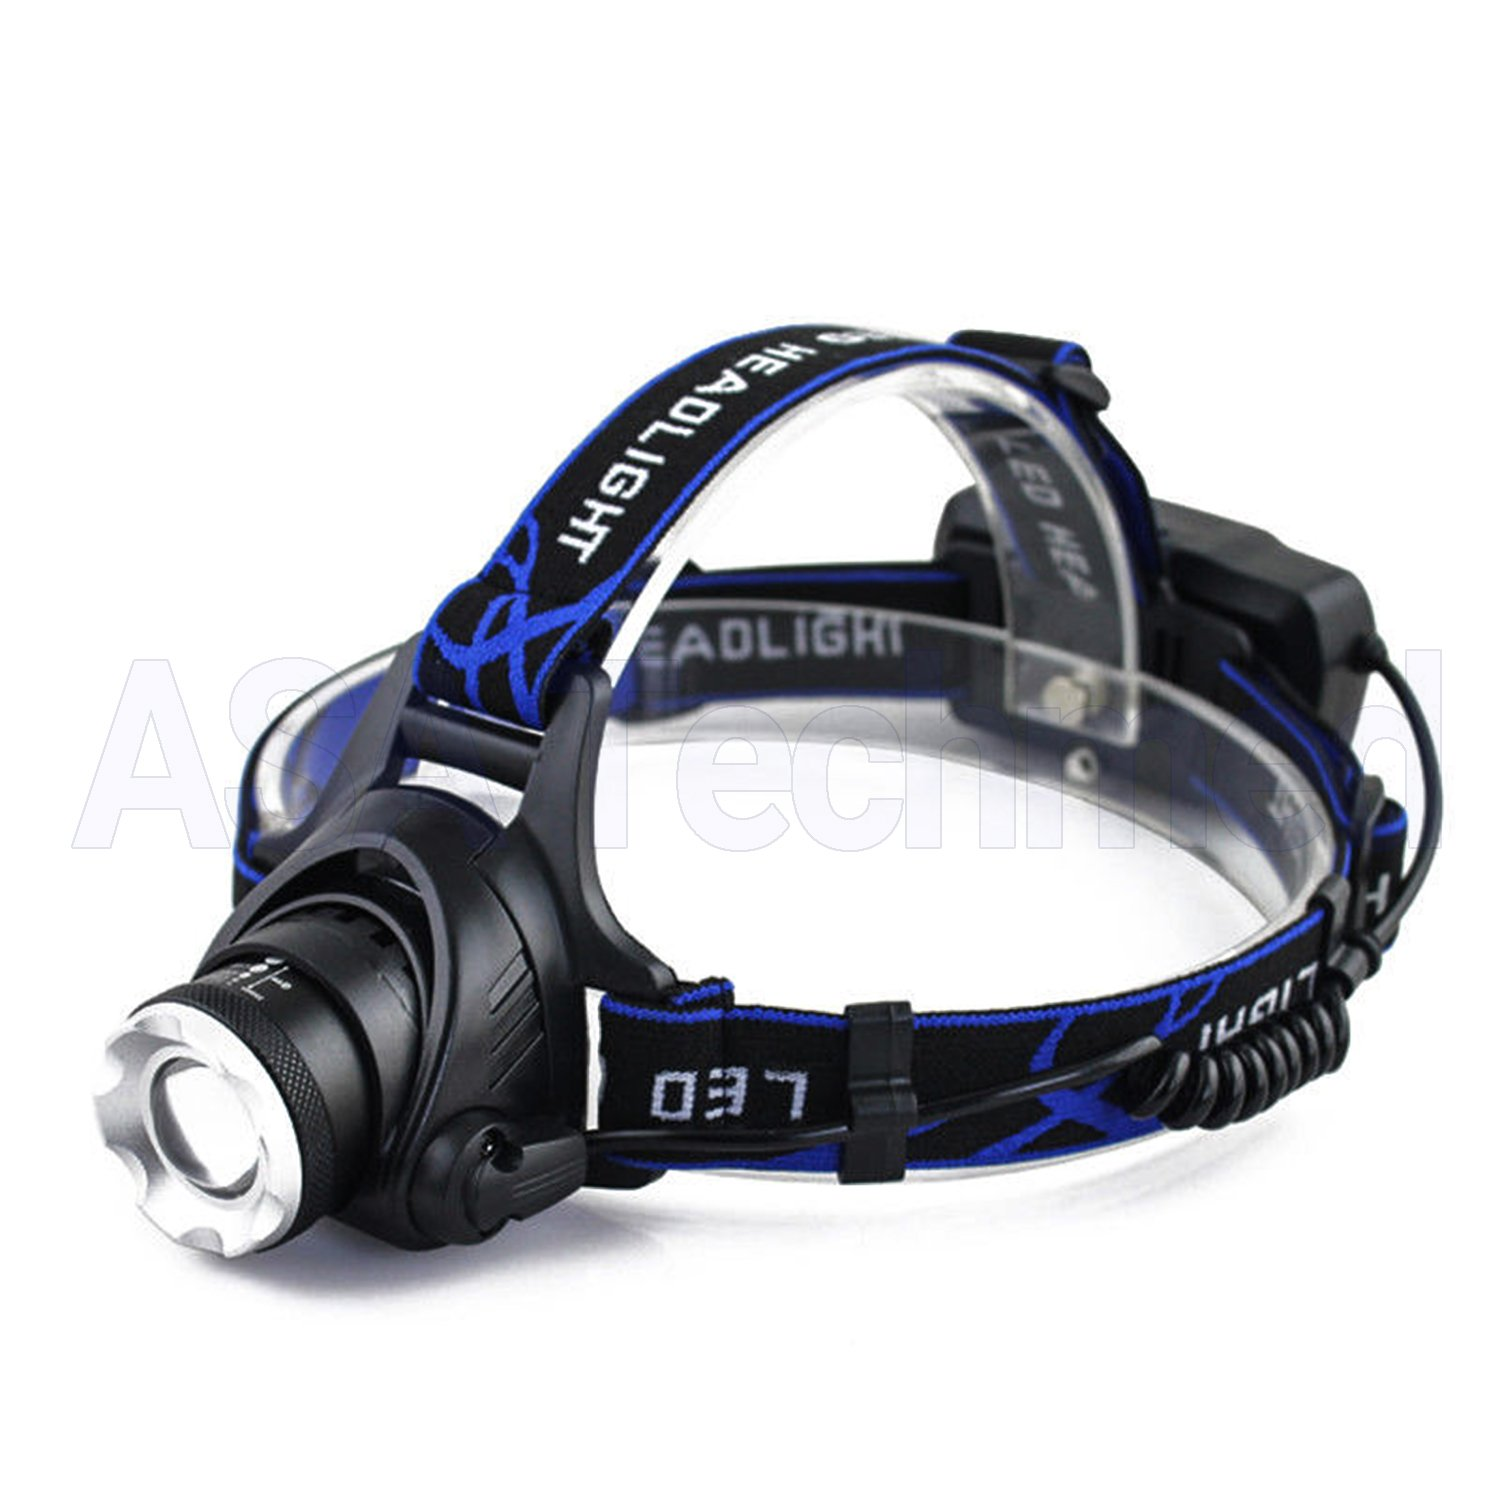 ASATechmed Tactical 30000LM Rechargeable T6 LED Headlamp 18650 Headlight Head Lamp Torch - Ideal for Camping, Hiking, First Responders, Extreme Rescue, Mechanics and Constructions.